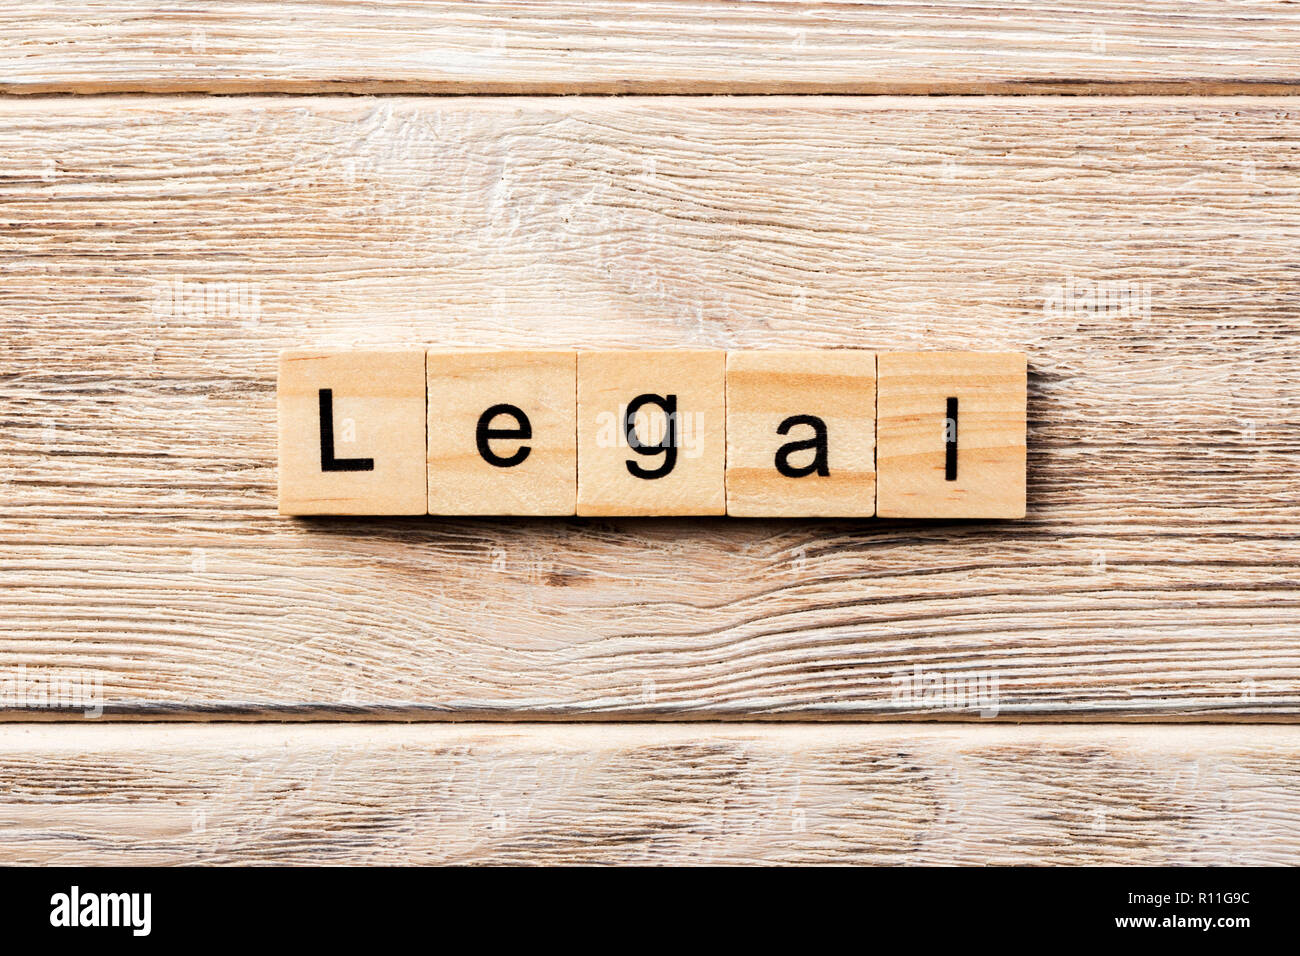 legal word written on wood block. legal text on table, concept. - Stock Image